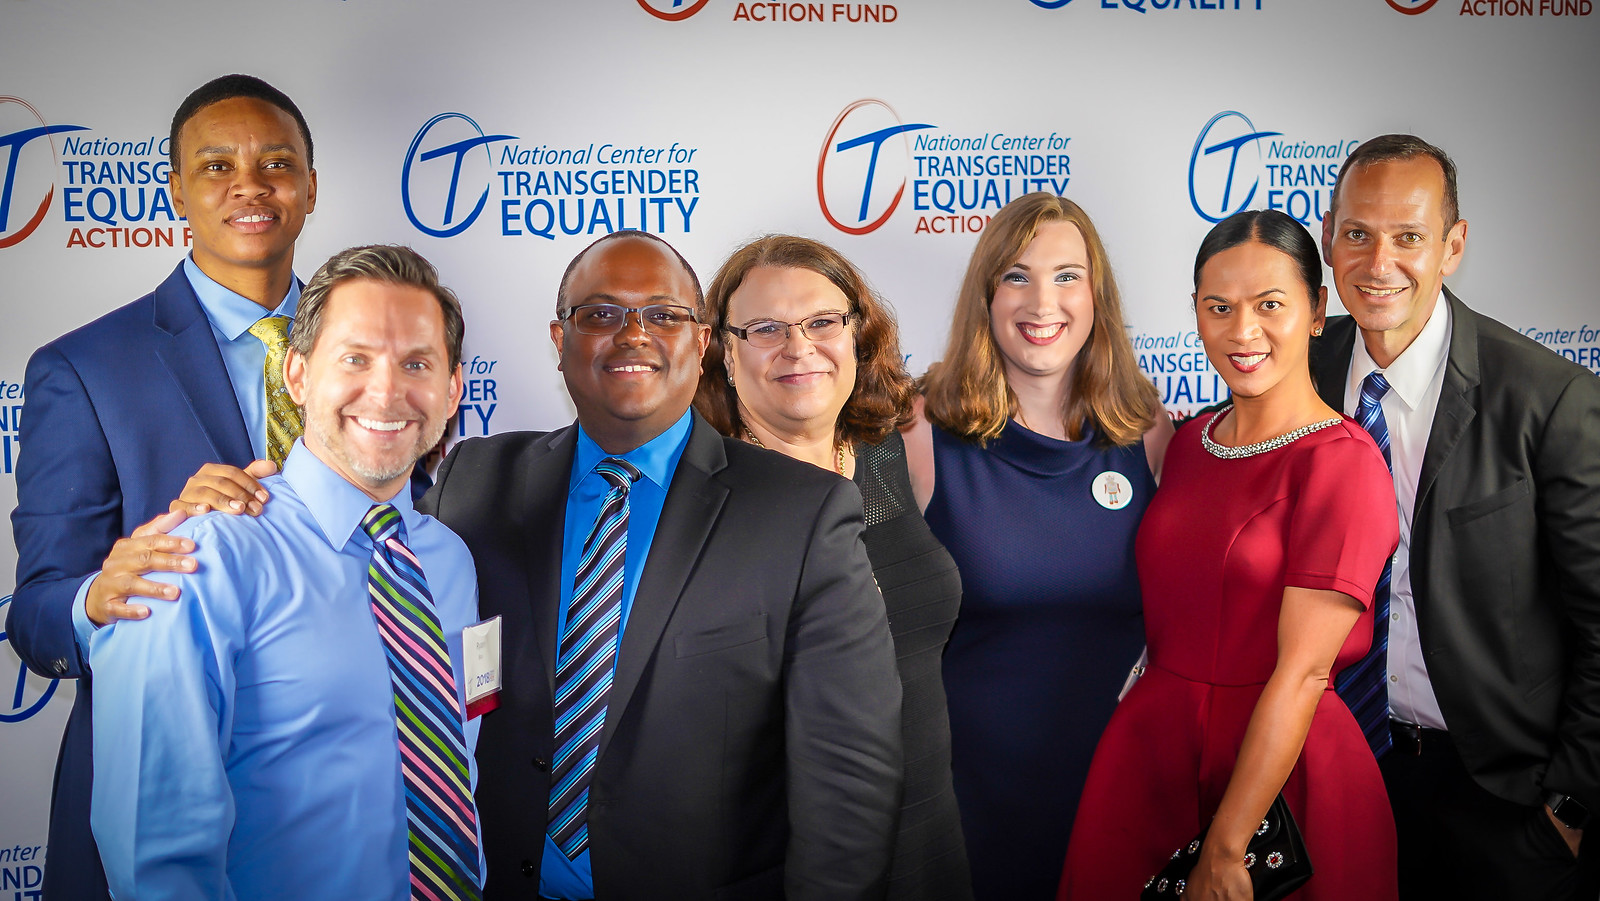 2018.05.18 NCTE TransEquality Now Awards, Washington, DC USA 00309